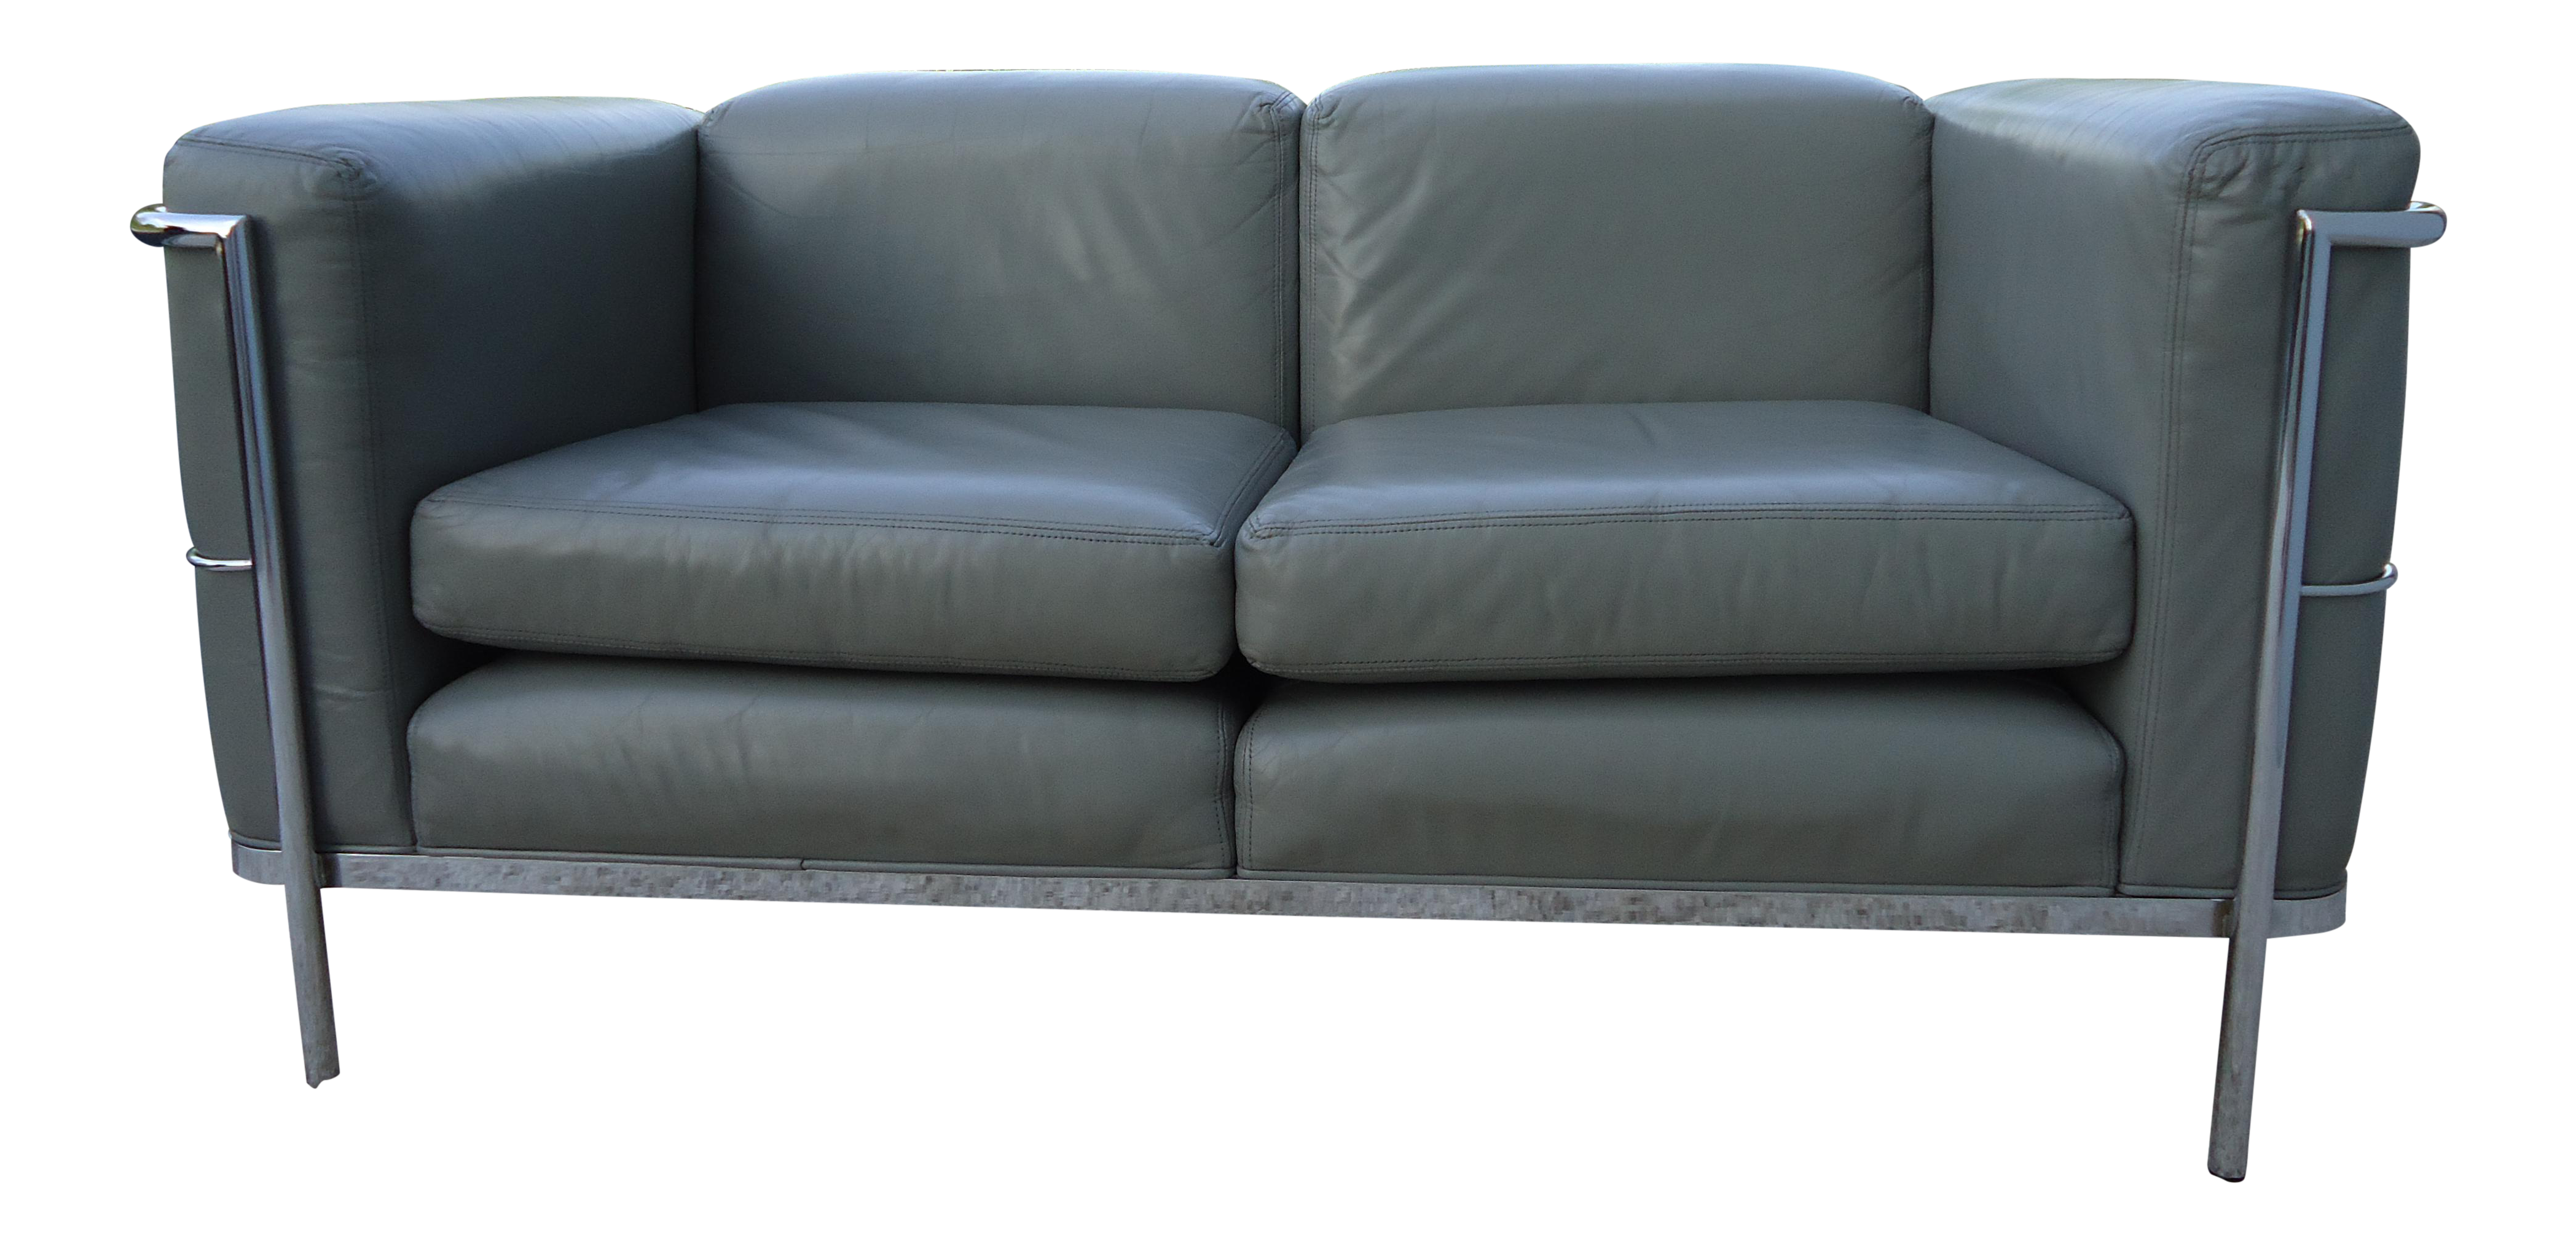 Gently Used Le Corbusier Furniture Up To 50 Off At Chairish